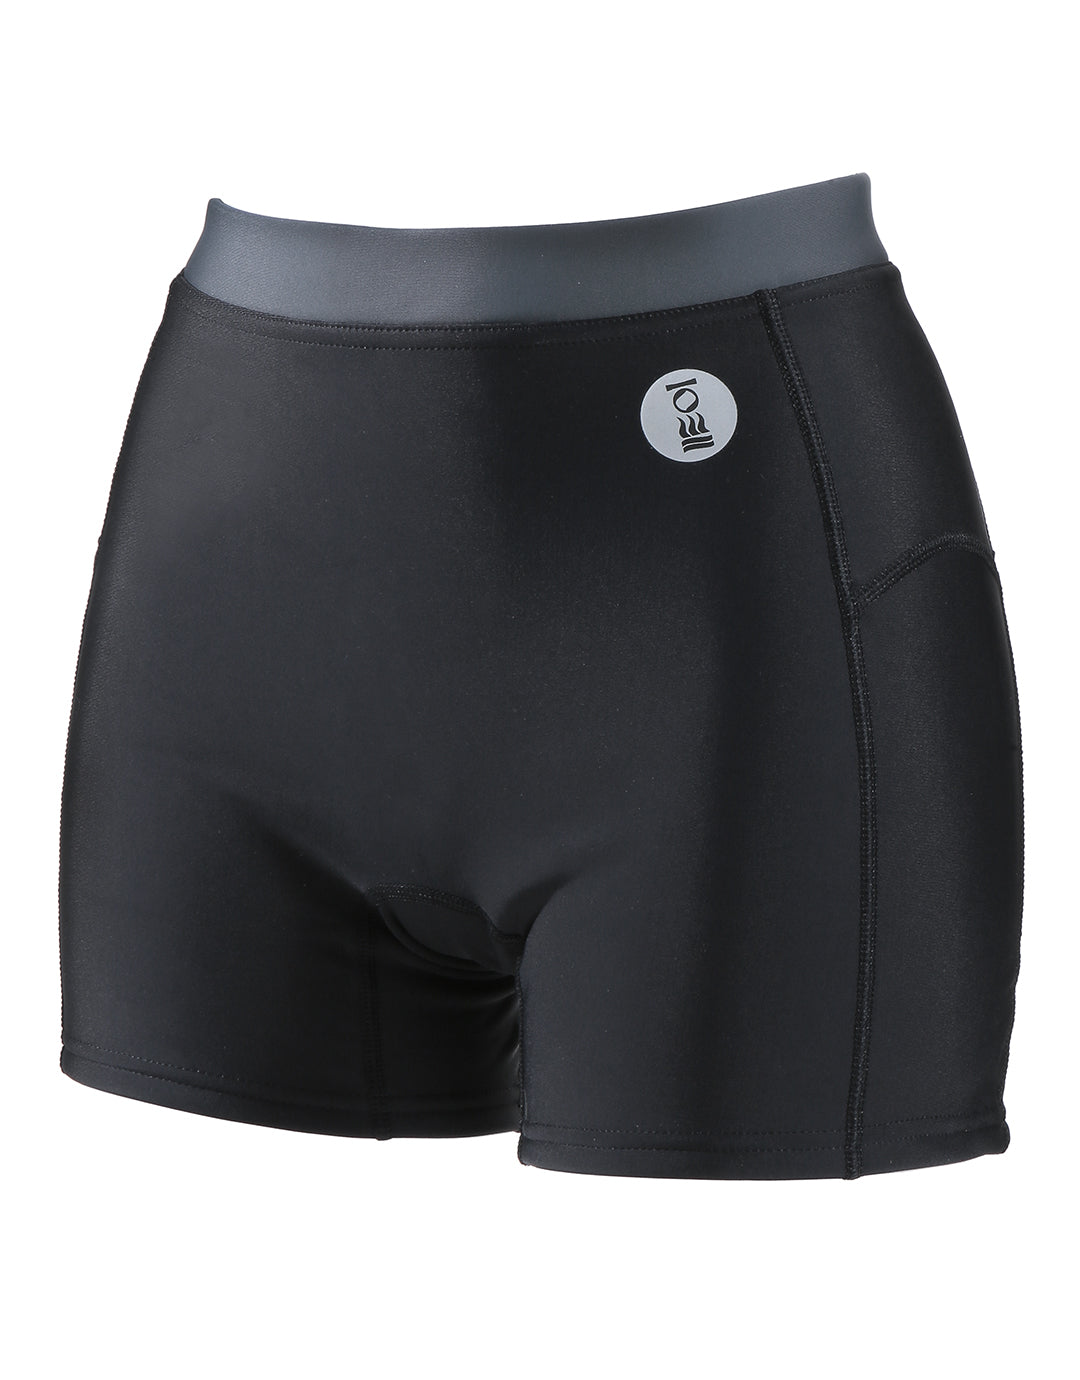 Image of Fourth Element Women's Thermocline Shorts